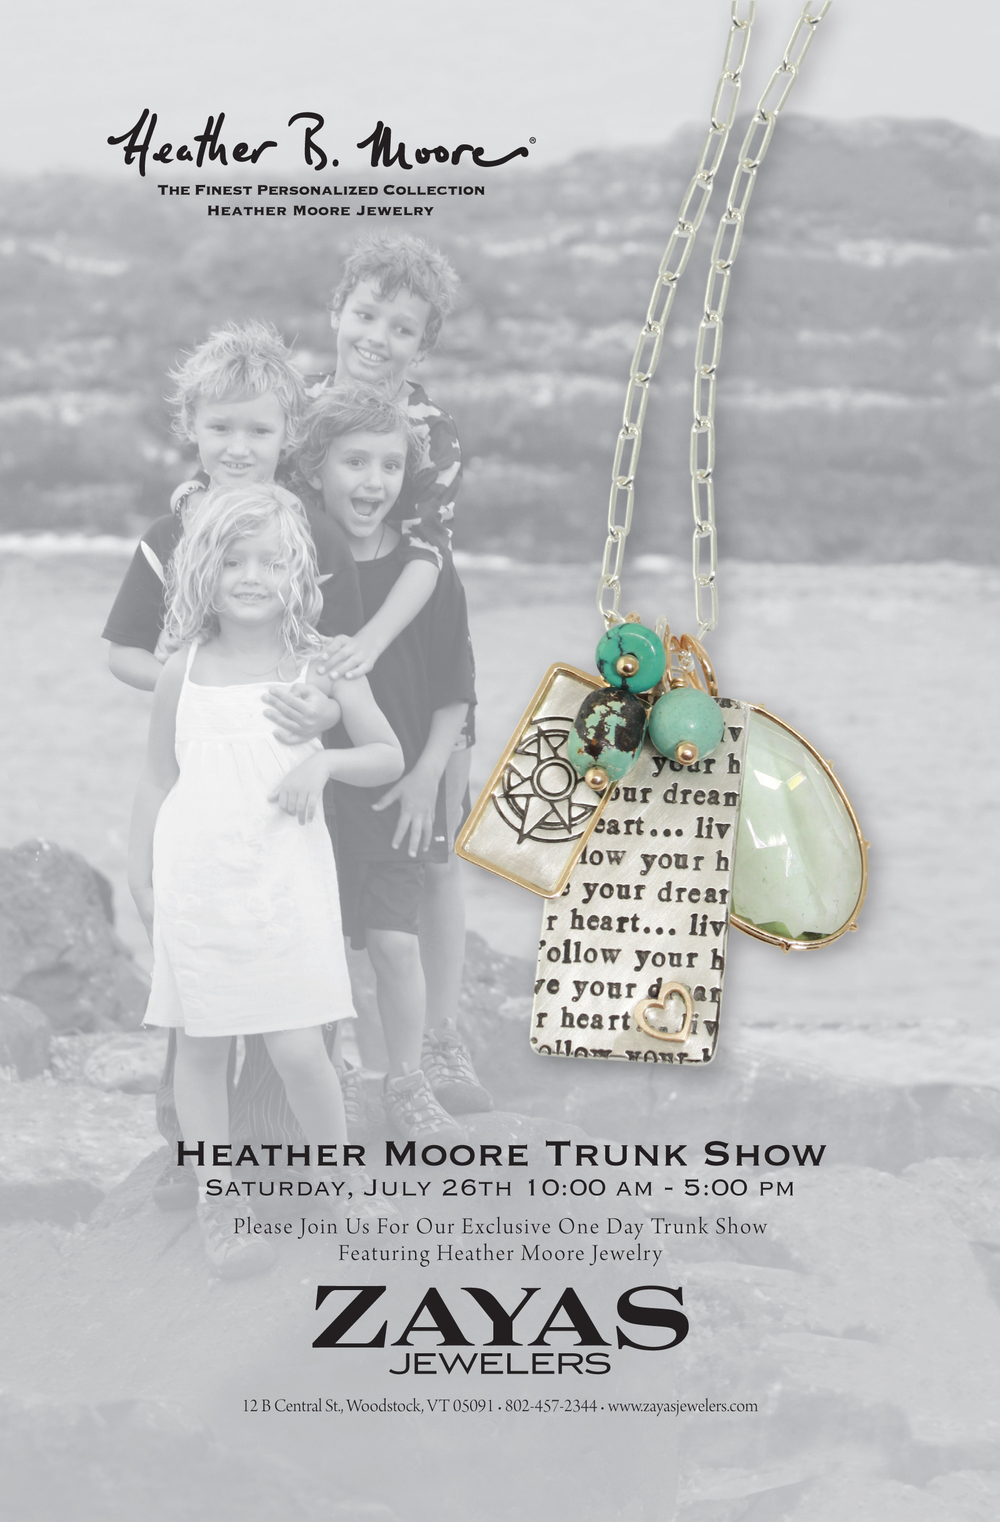 Heather moore trunk show at zayas jewelers